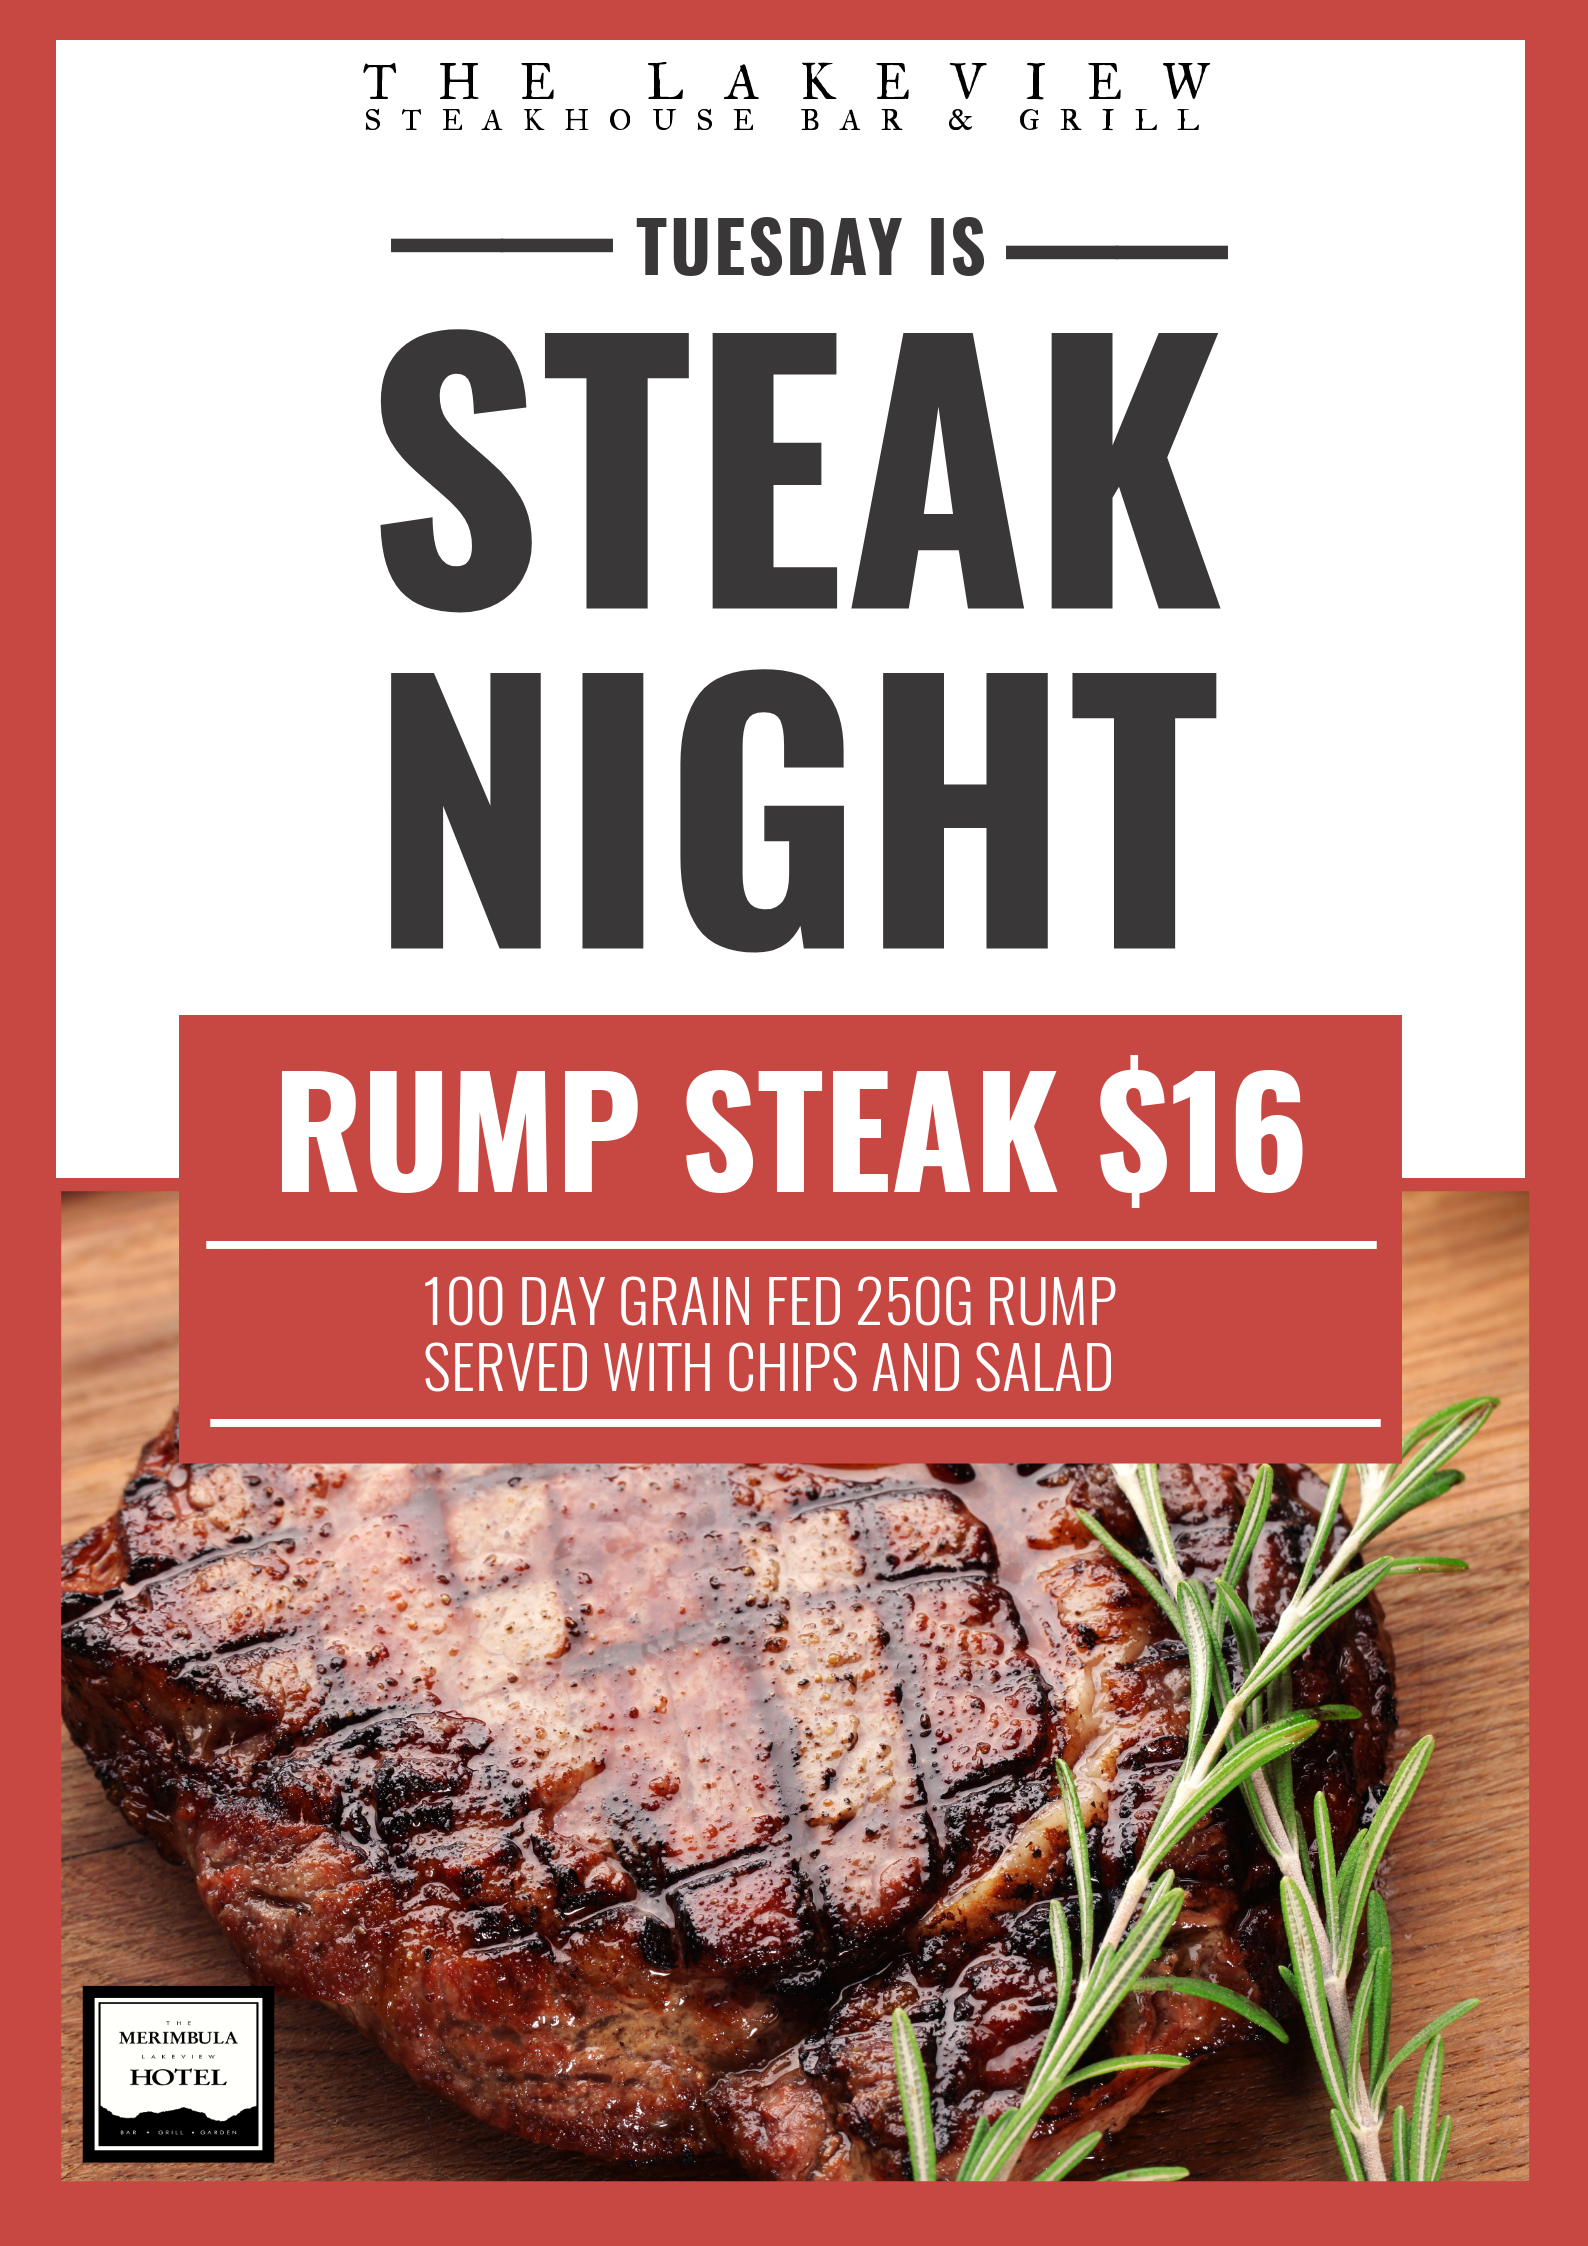 Lakeview hotel steak night